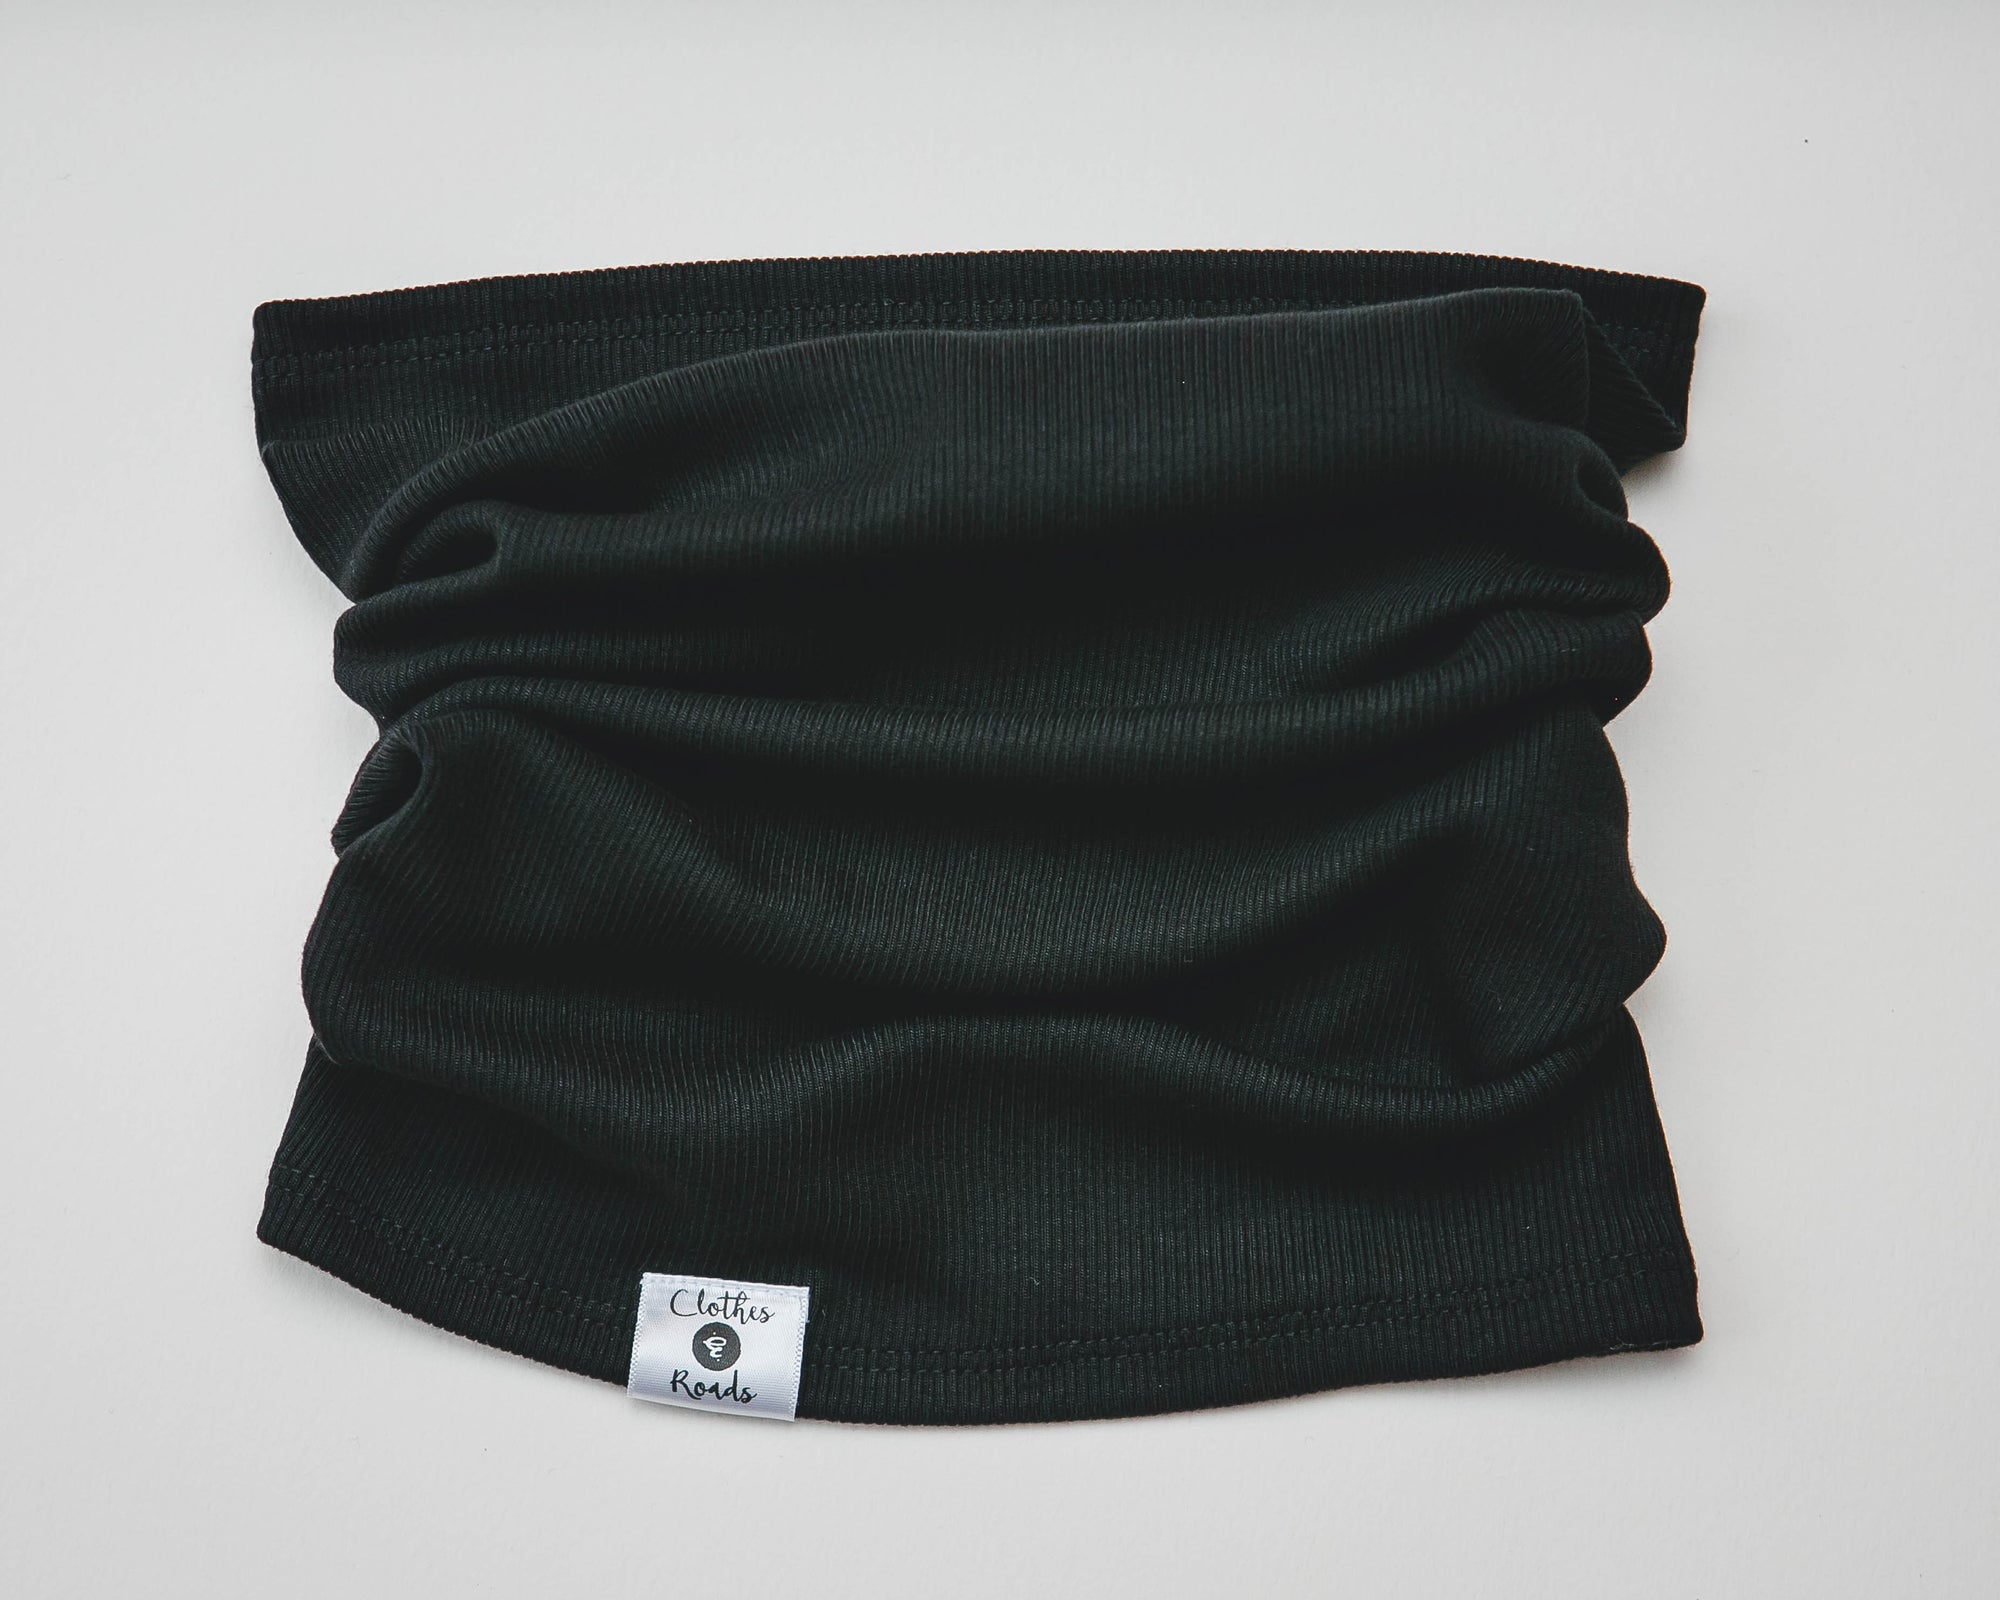 The Multifunctional Neck Warmer - UNISEX Neck Warmer Clothes & Roads